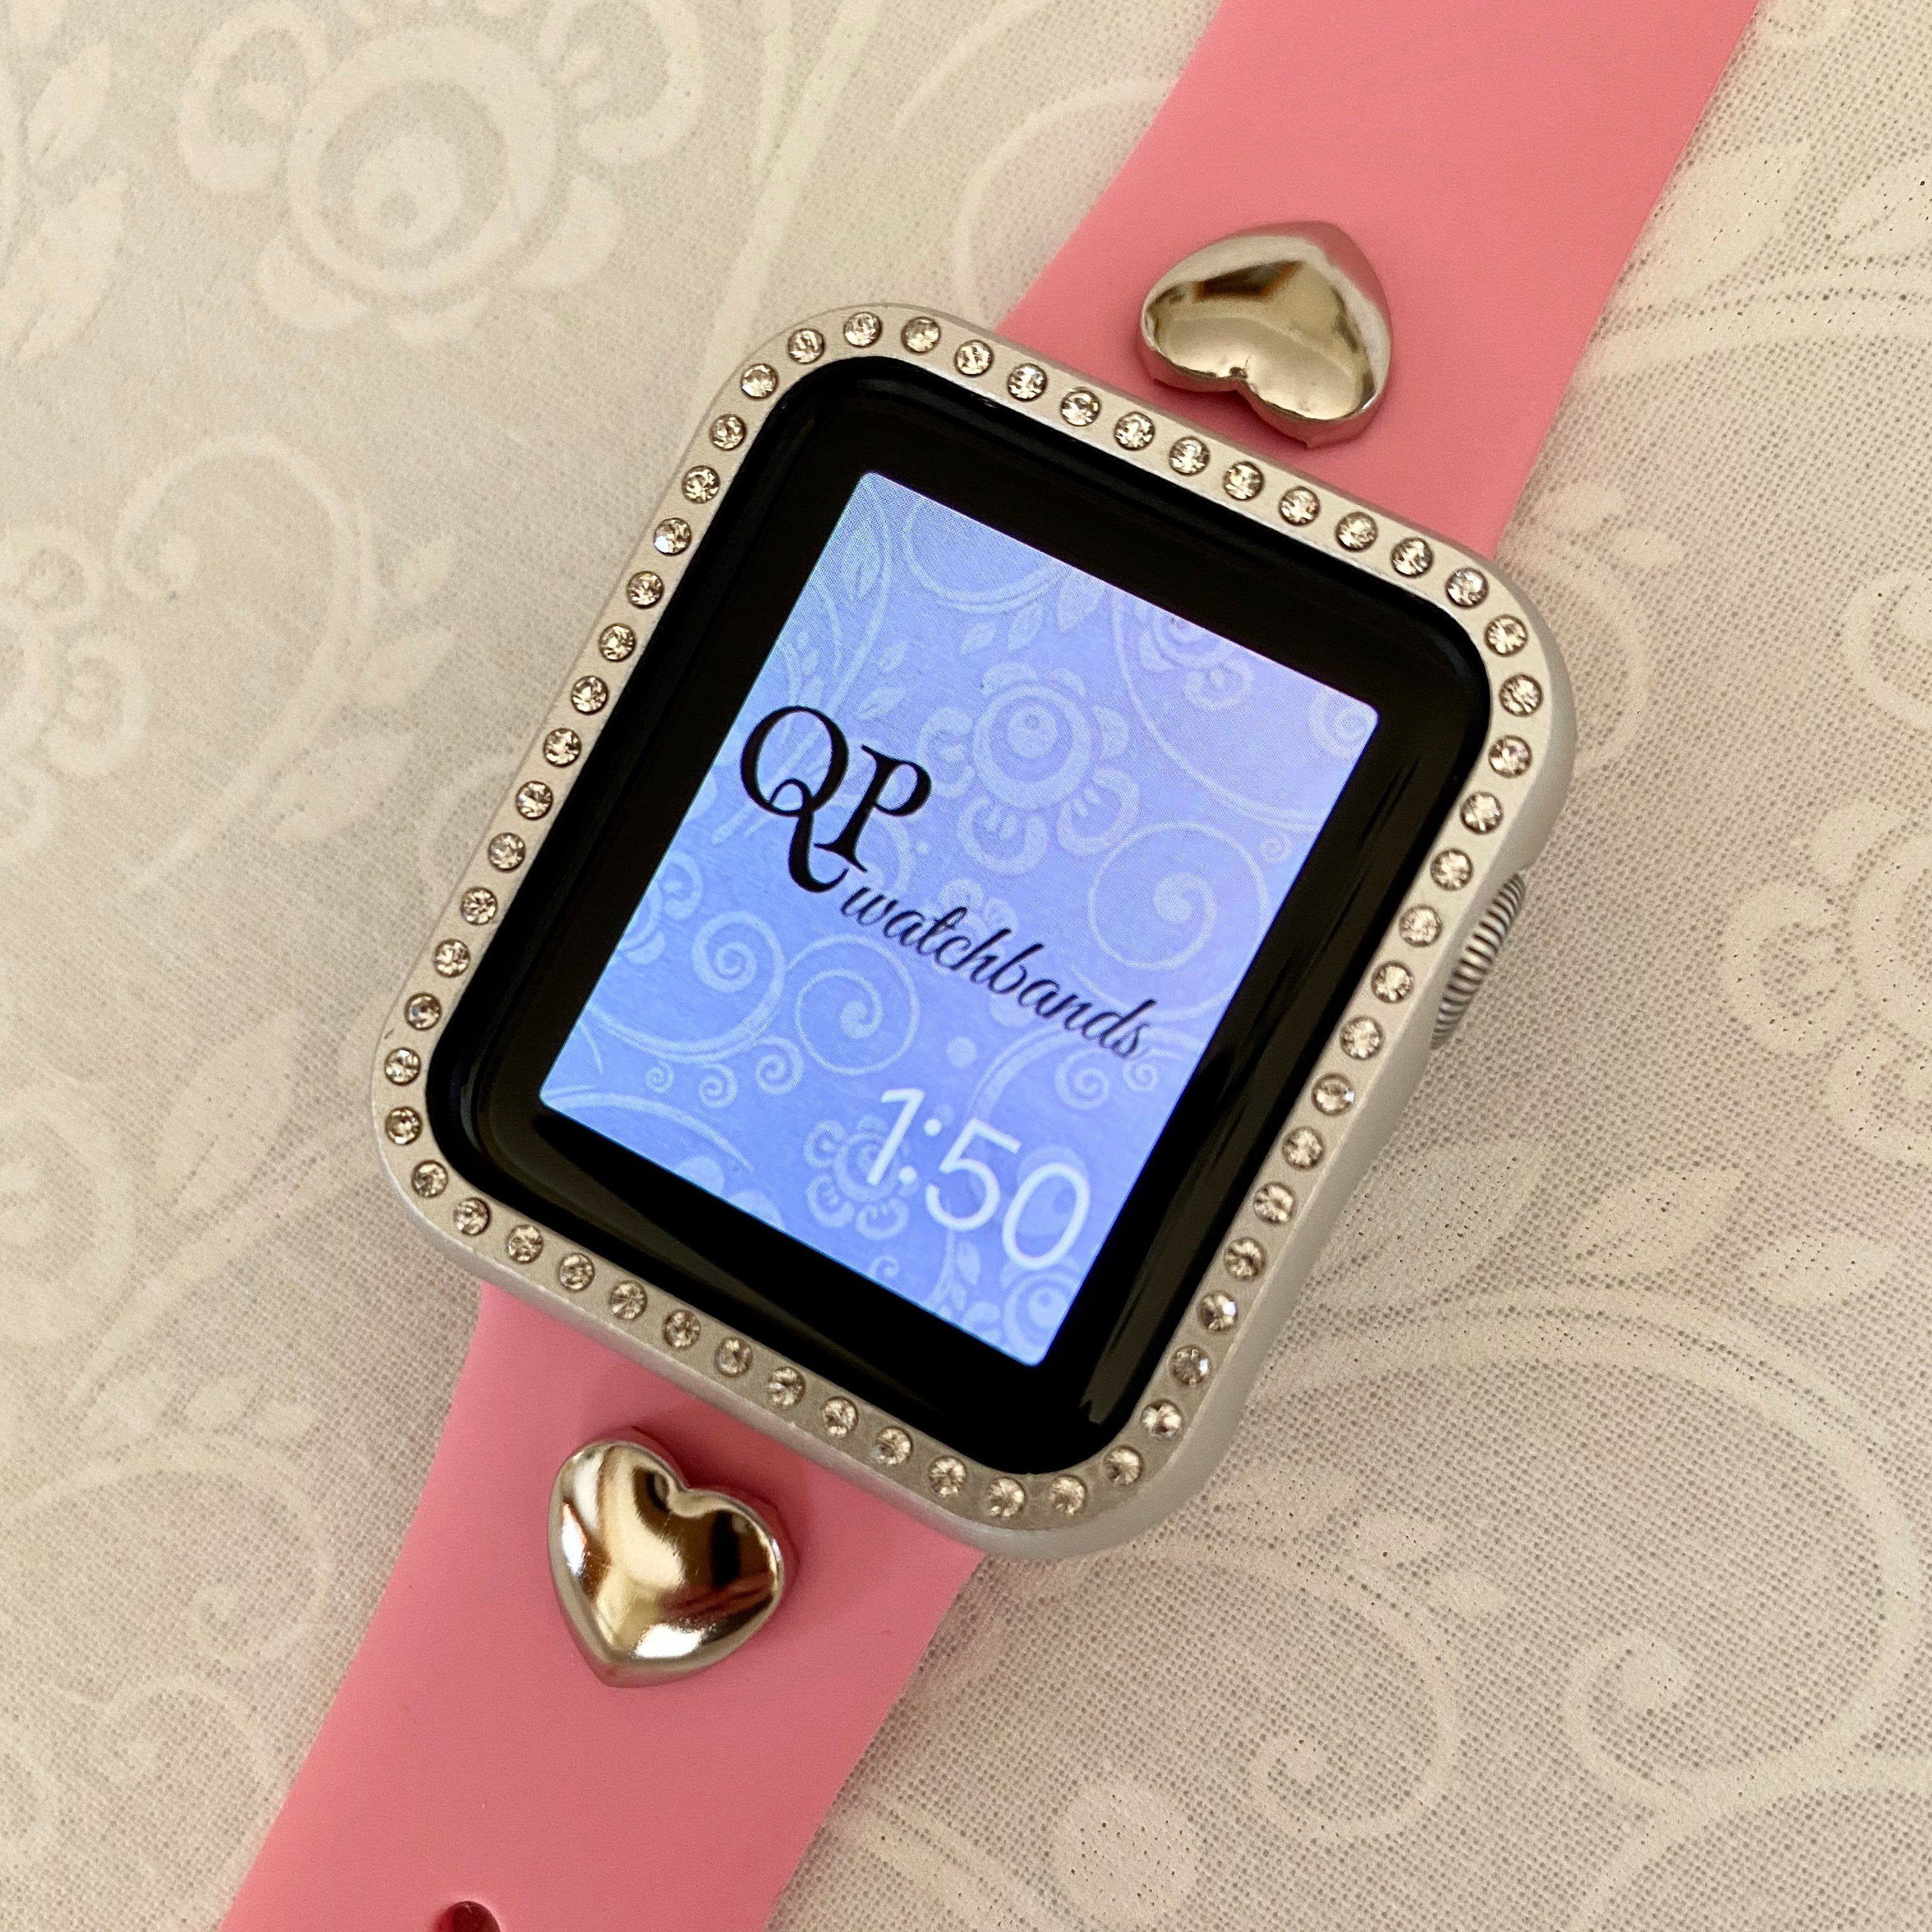 Pin By Qpwatchbands On My Saves In 2021 Apple Watch Bands Apple Watch Case Apple Watch